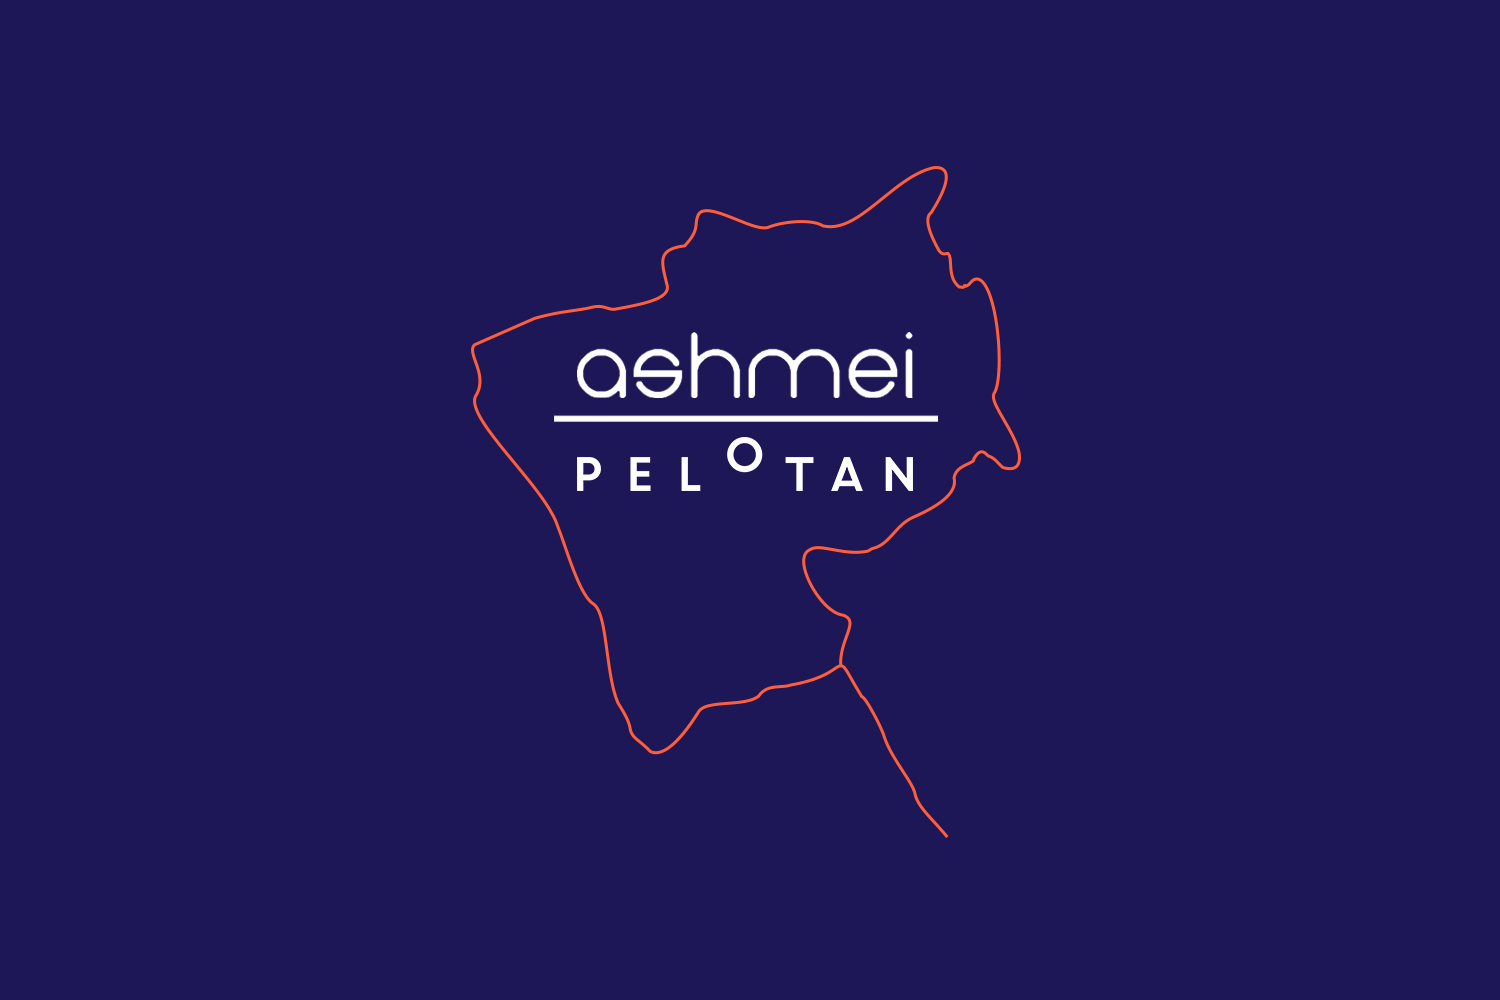 Pelotan-Ride-Ashmei-Featured image